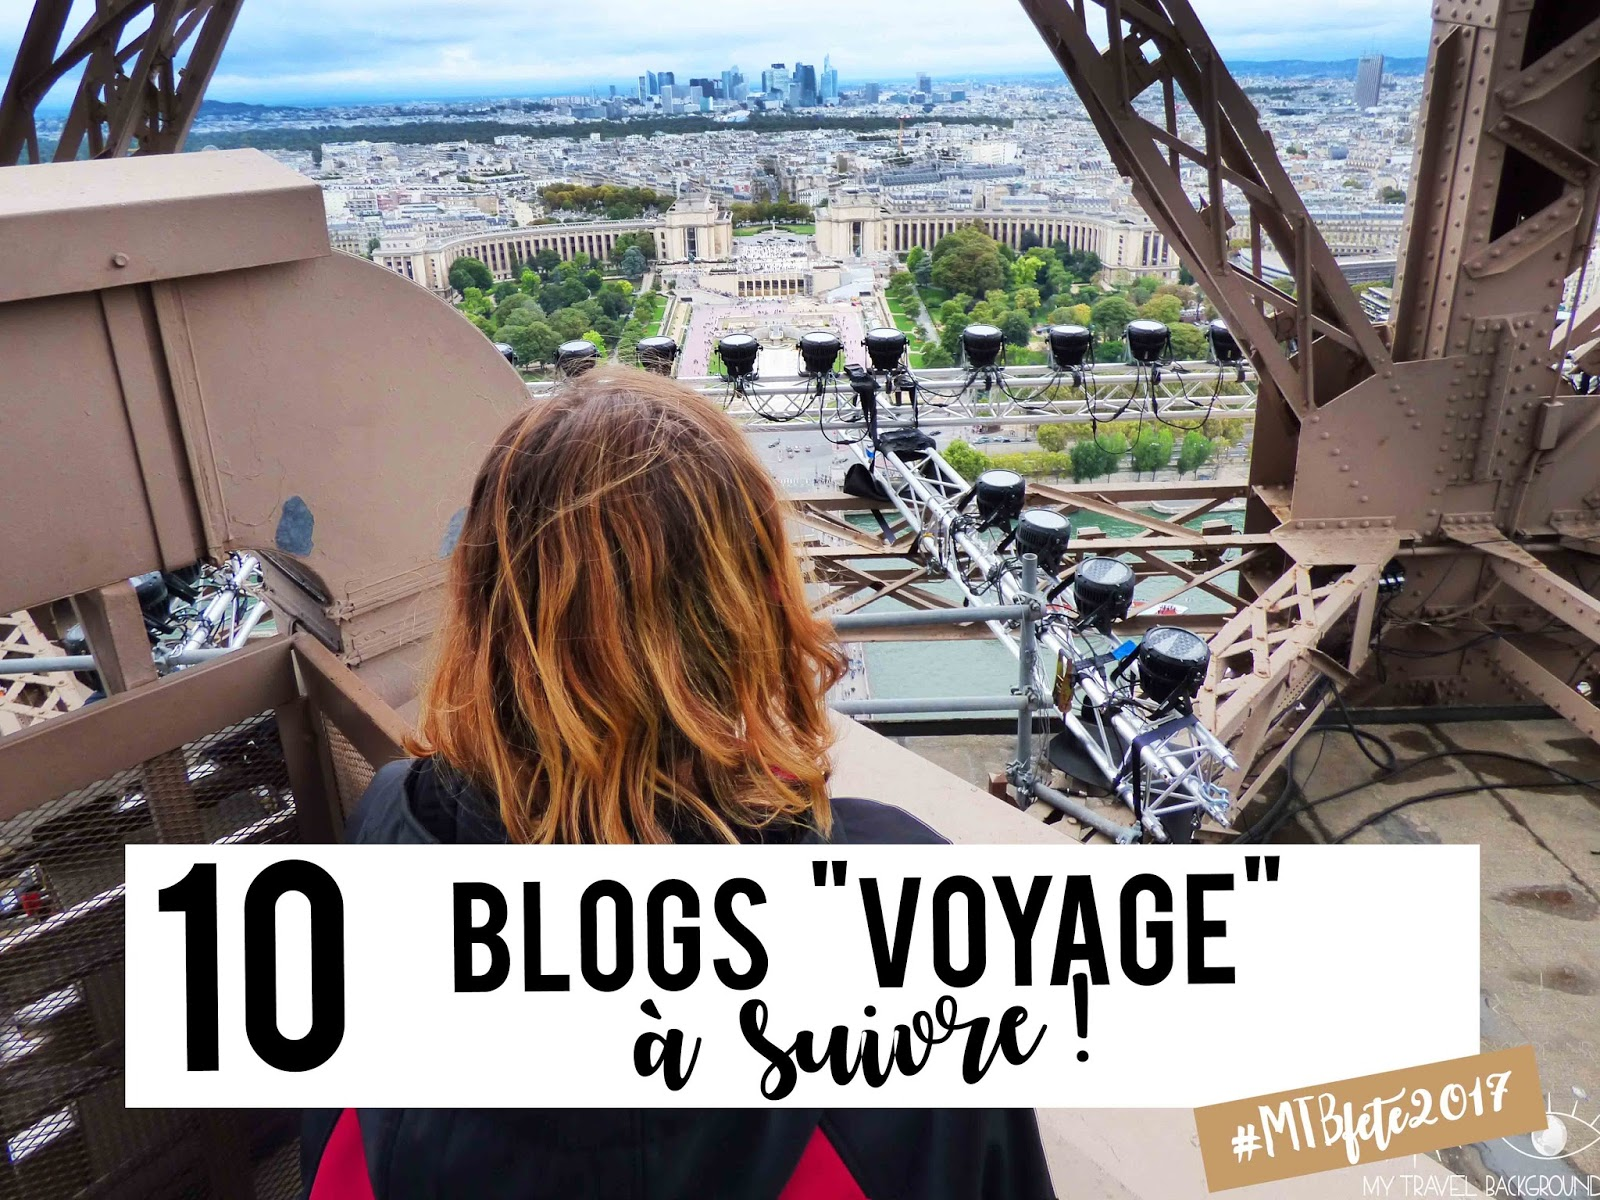 My Travel Background : 10 blogs voyage à suivre